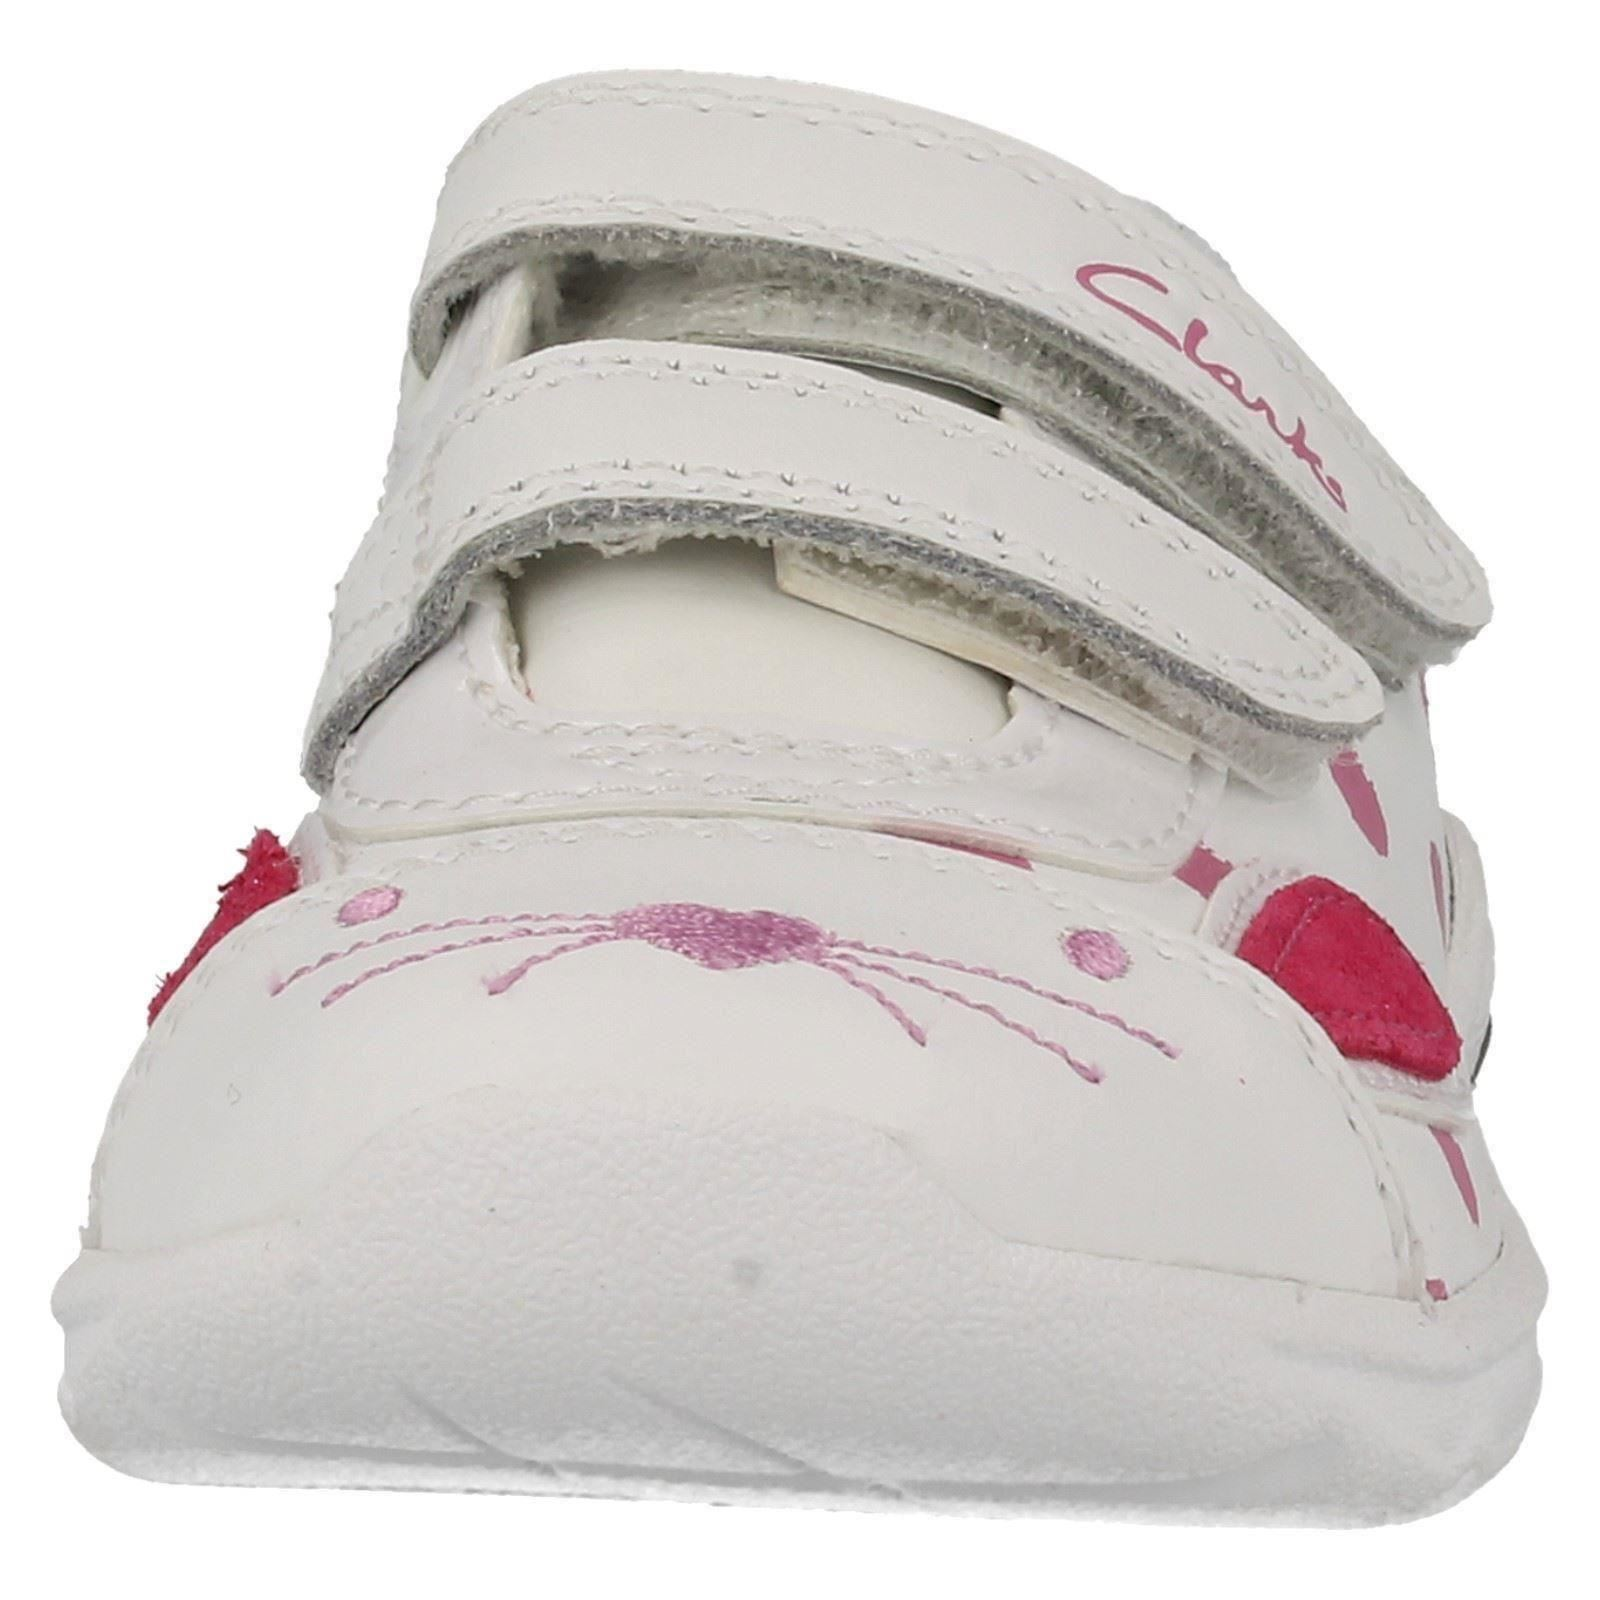 Clarks Shoes Childrens White Trainers